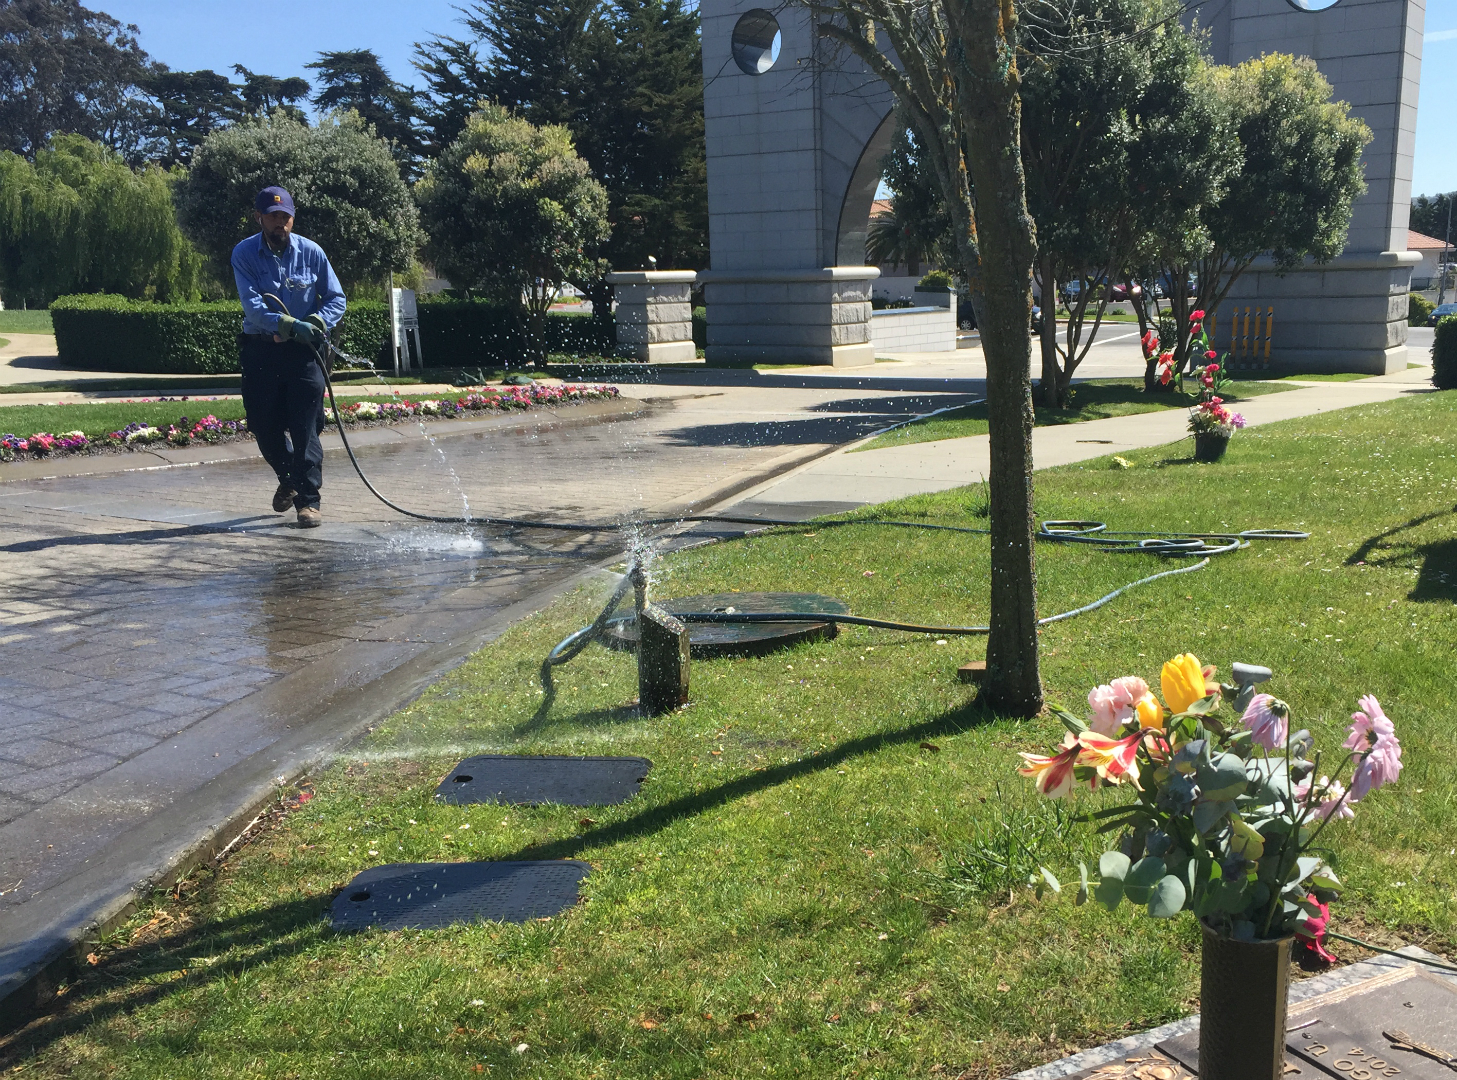 A worker sprays down part of Cypress Lawn Memorial Park in Colma. Officials hope to cut back water-use there, but not so much the grass goes brown. (Daniel Potter/KQED)